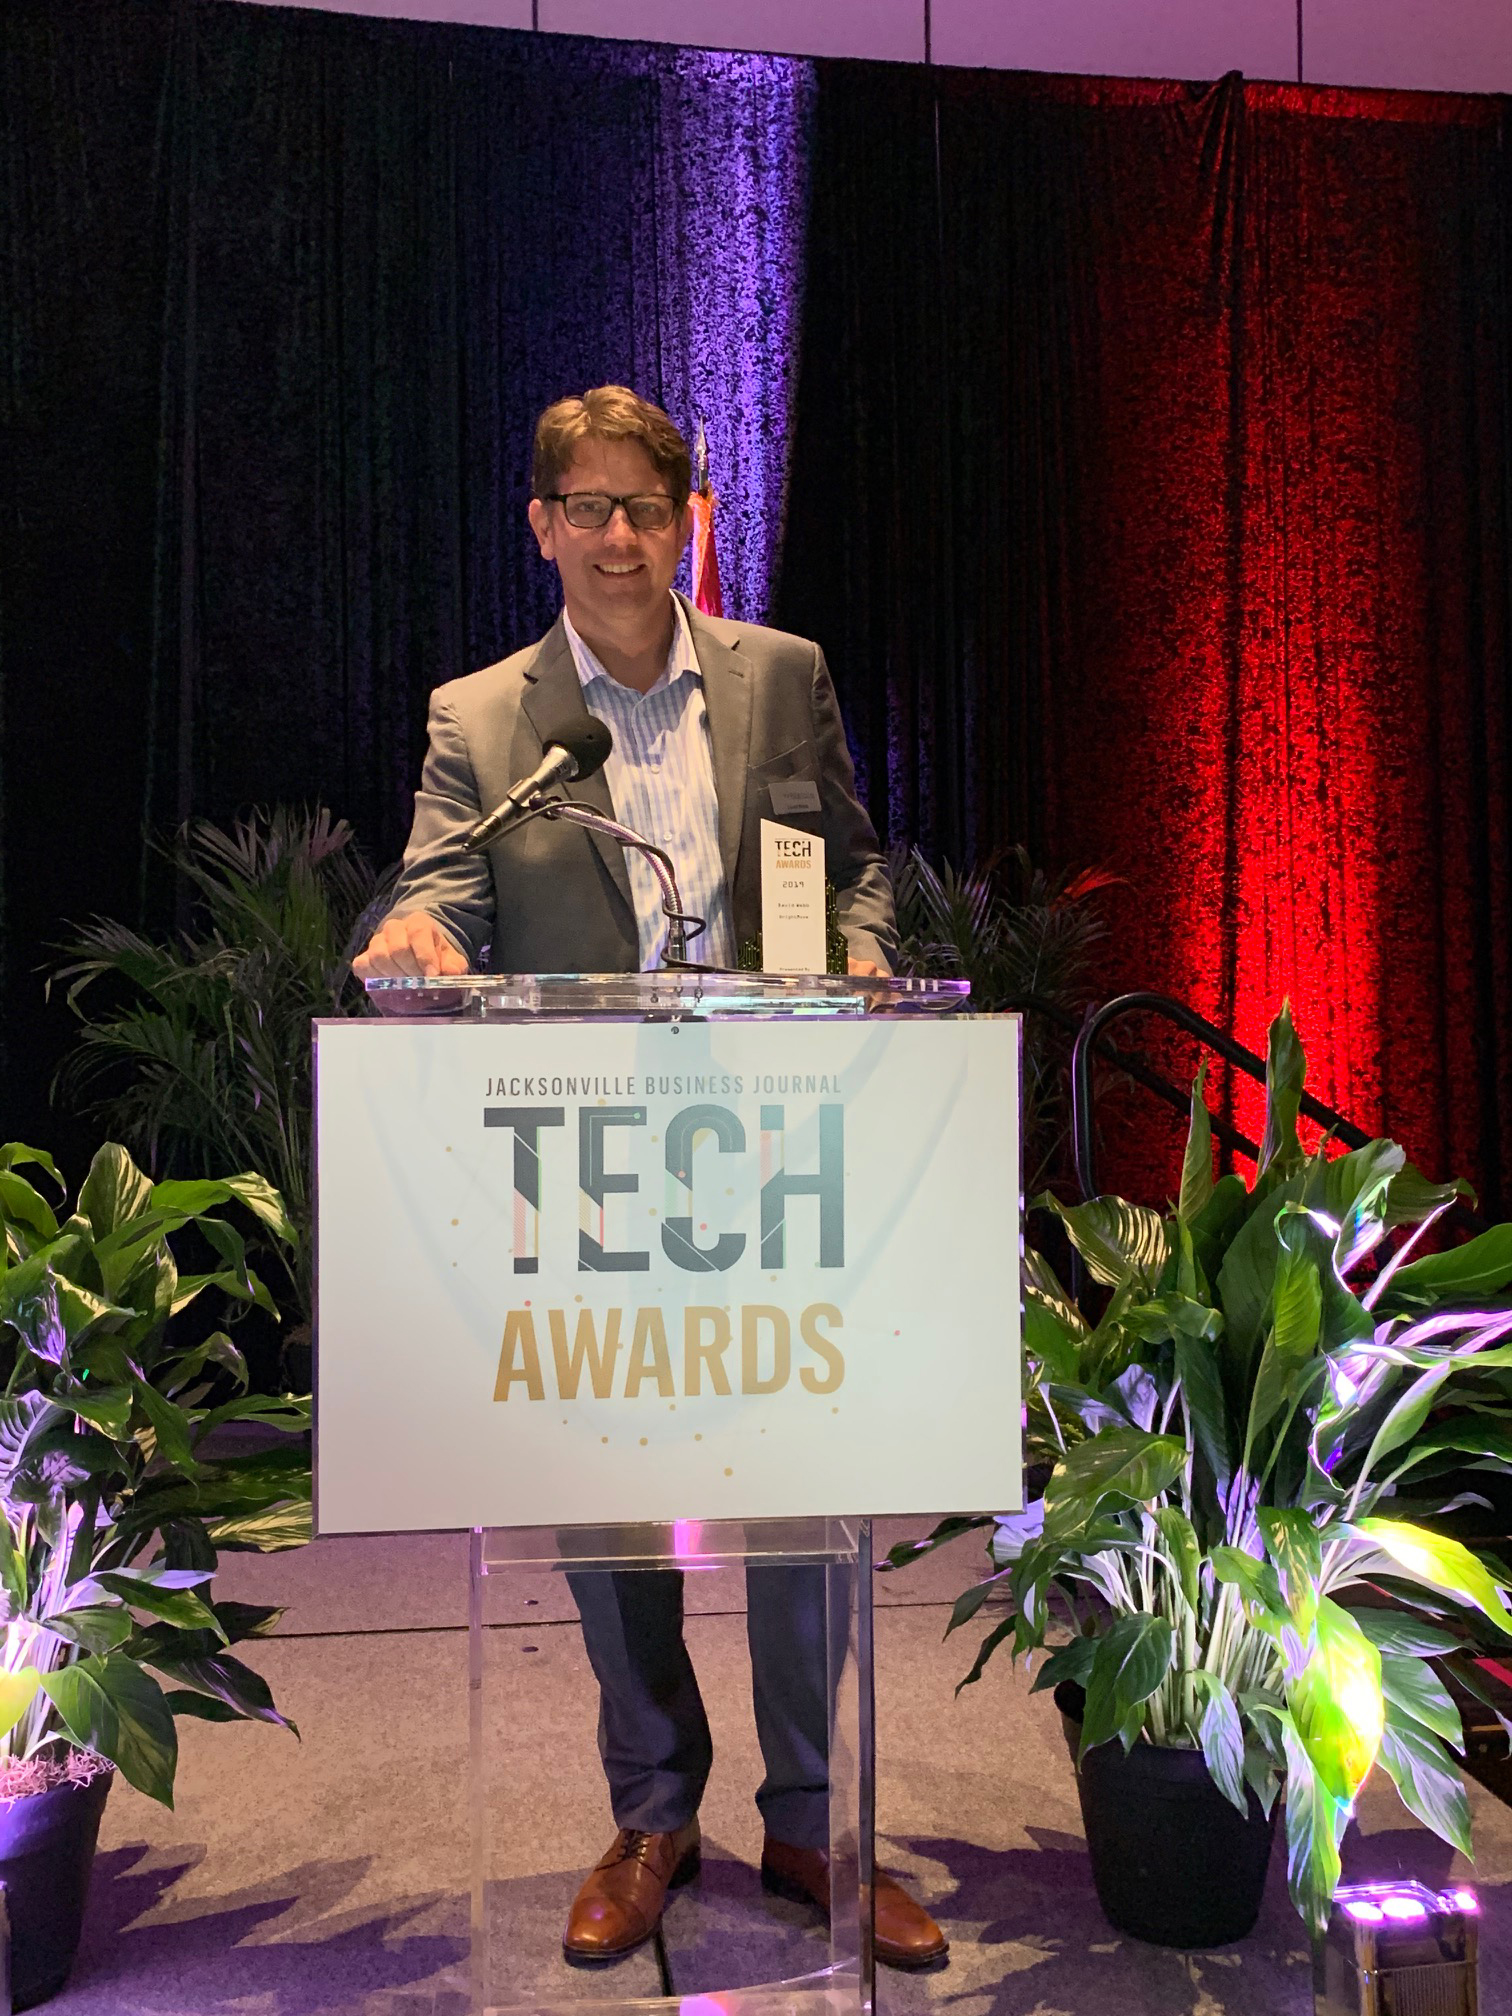 BRIGHTMOVE CEO HONORED AS A FIRST COAST TECH LEADER